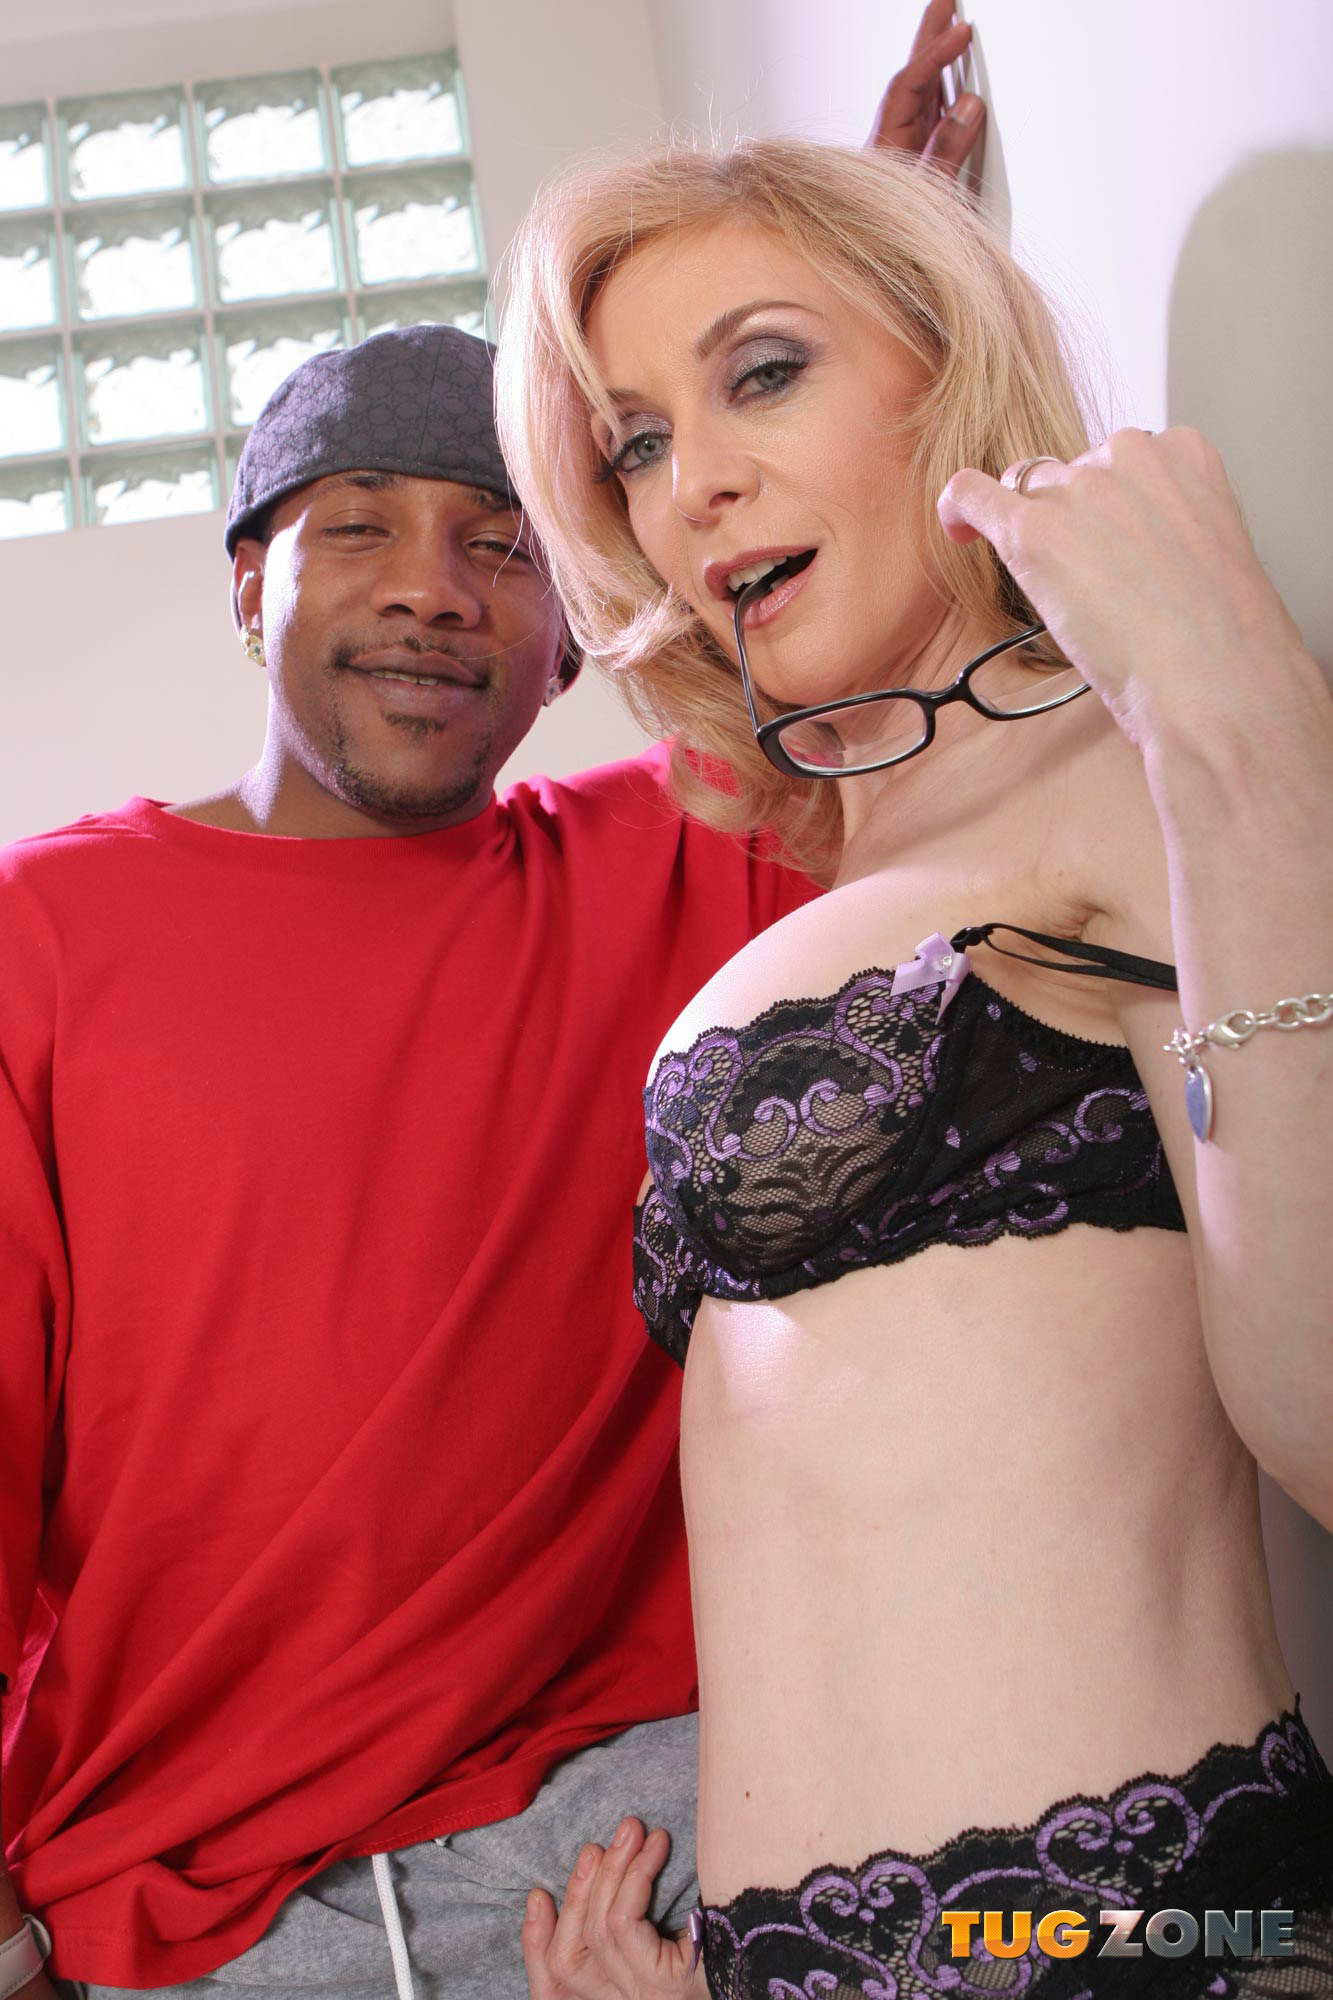 Tug Zone / Nina Hartley